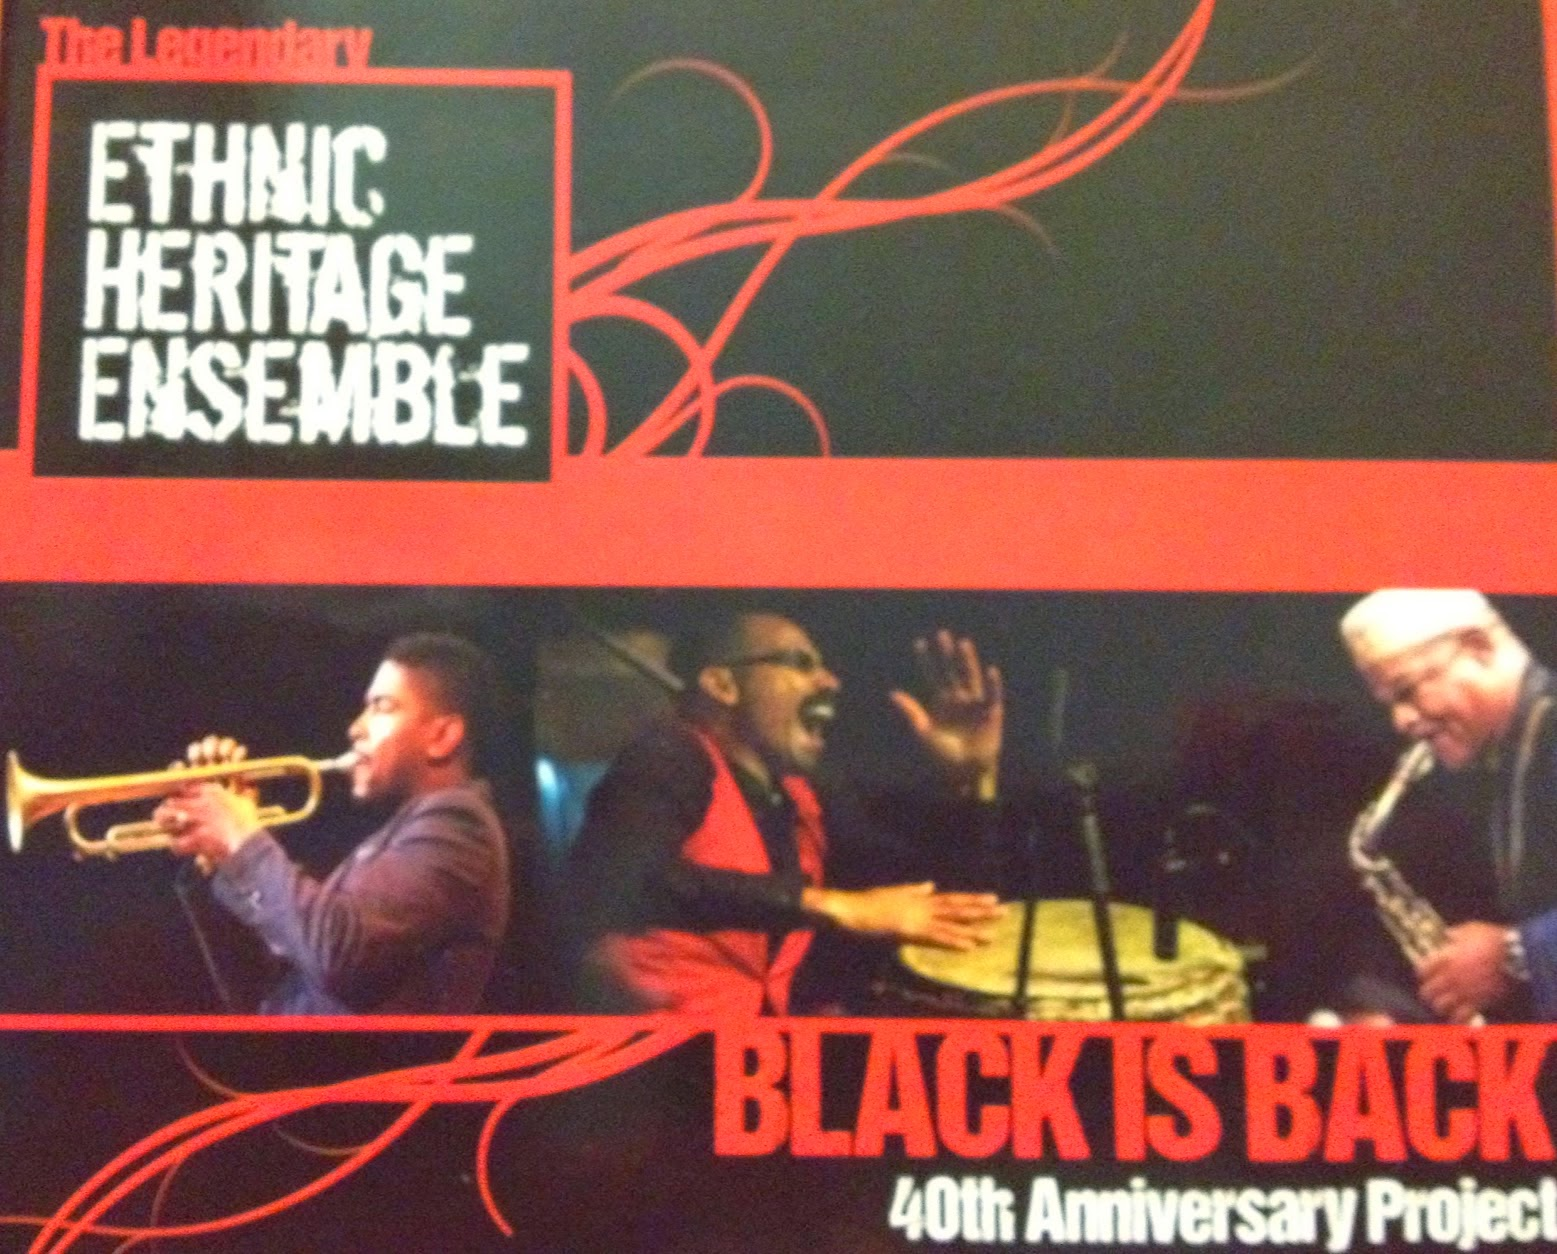 The Legendary Ethnic Heritage Ensemble Black Is Back 40th Anniversary Project